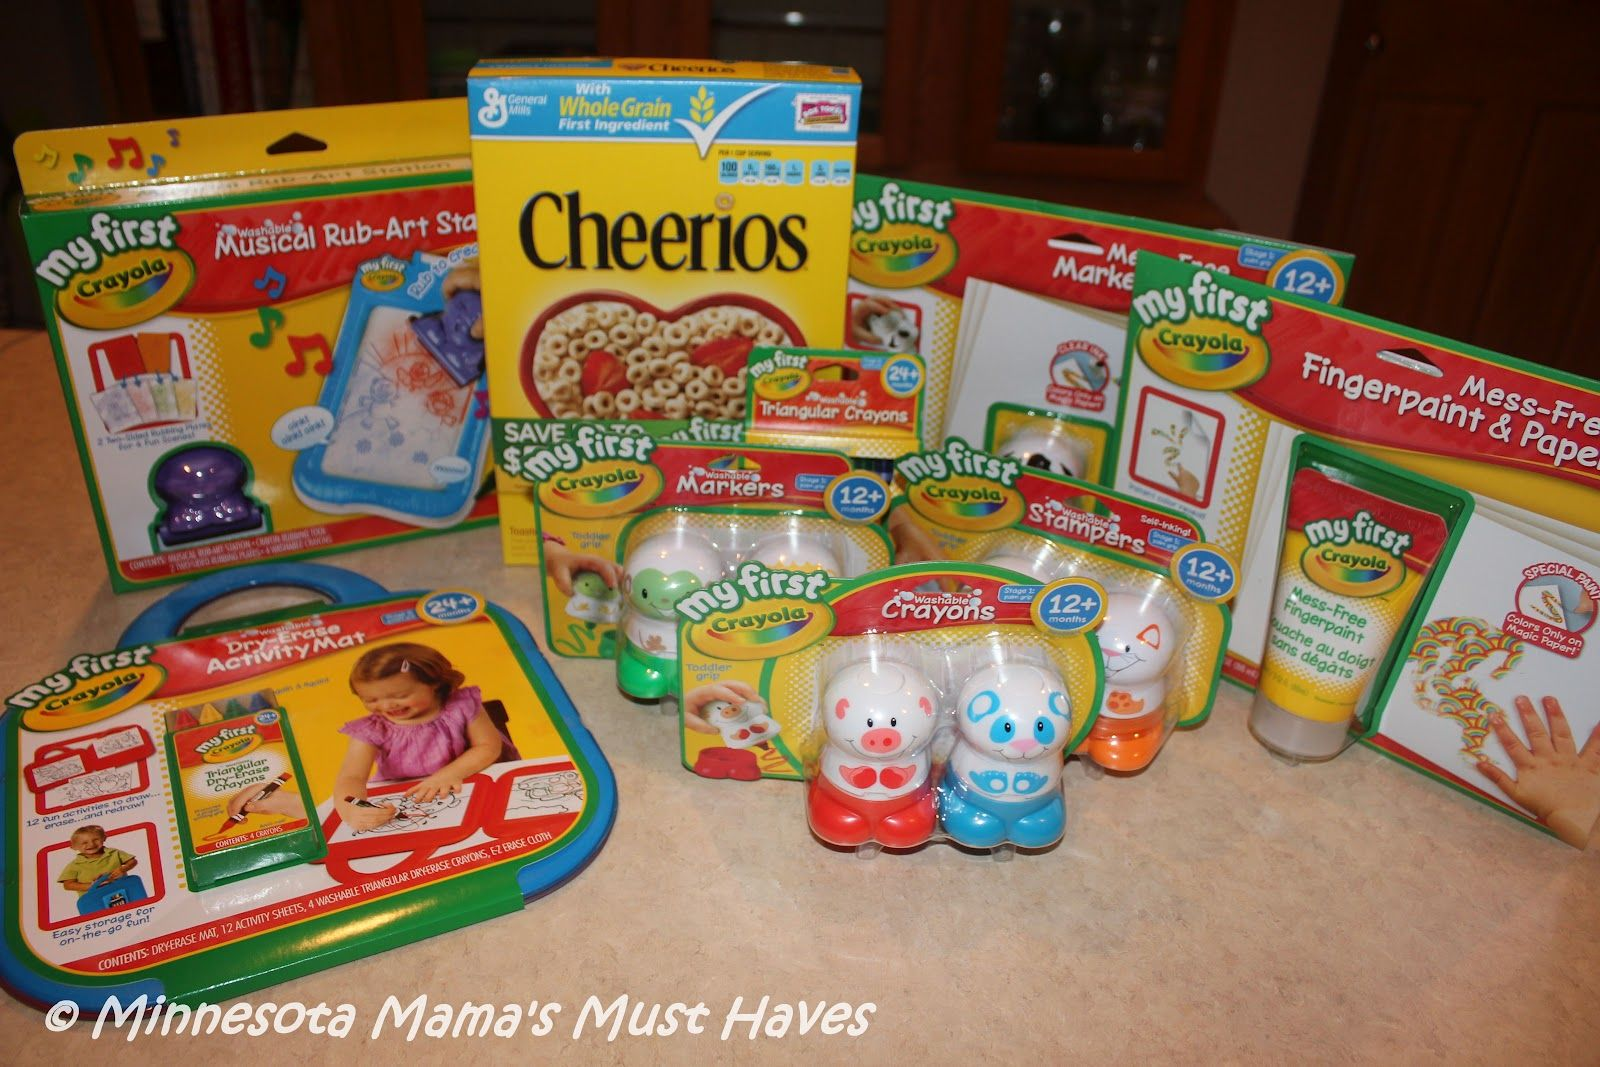 My First Crayola Makes Art Projects Fun and Keeps Mom Sane :) {Review & Giveaway}   Minnesota Mama's Must Haves